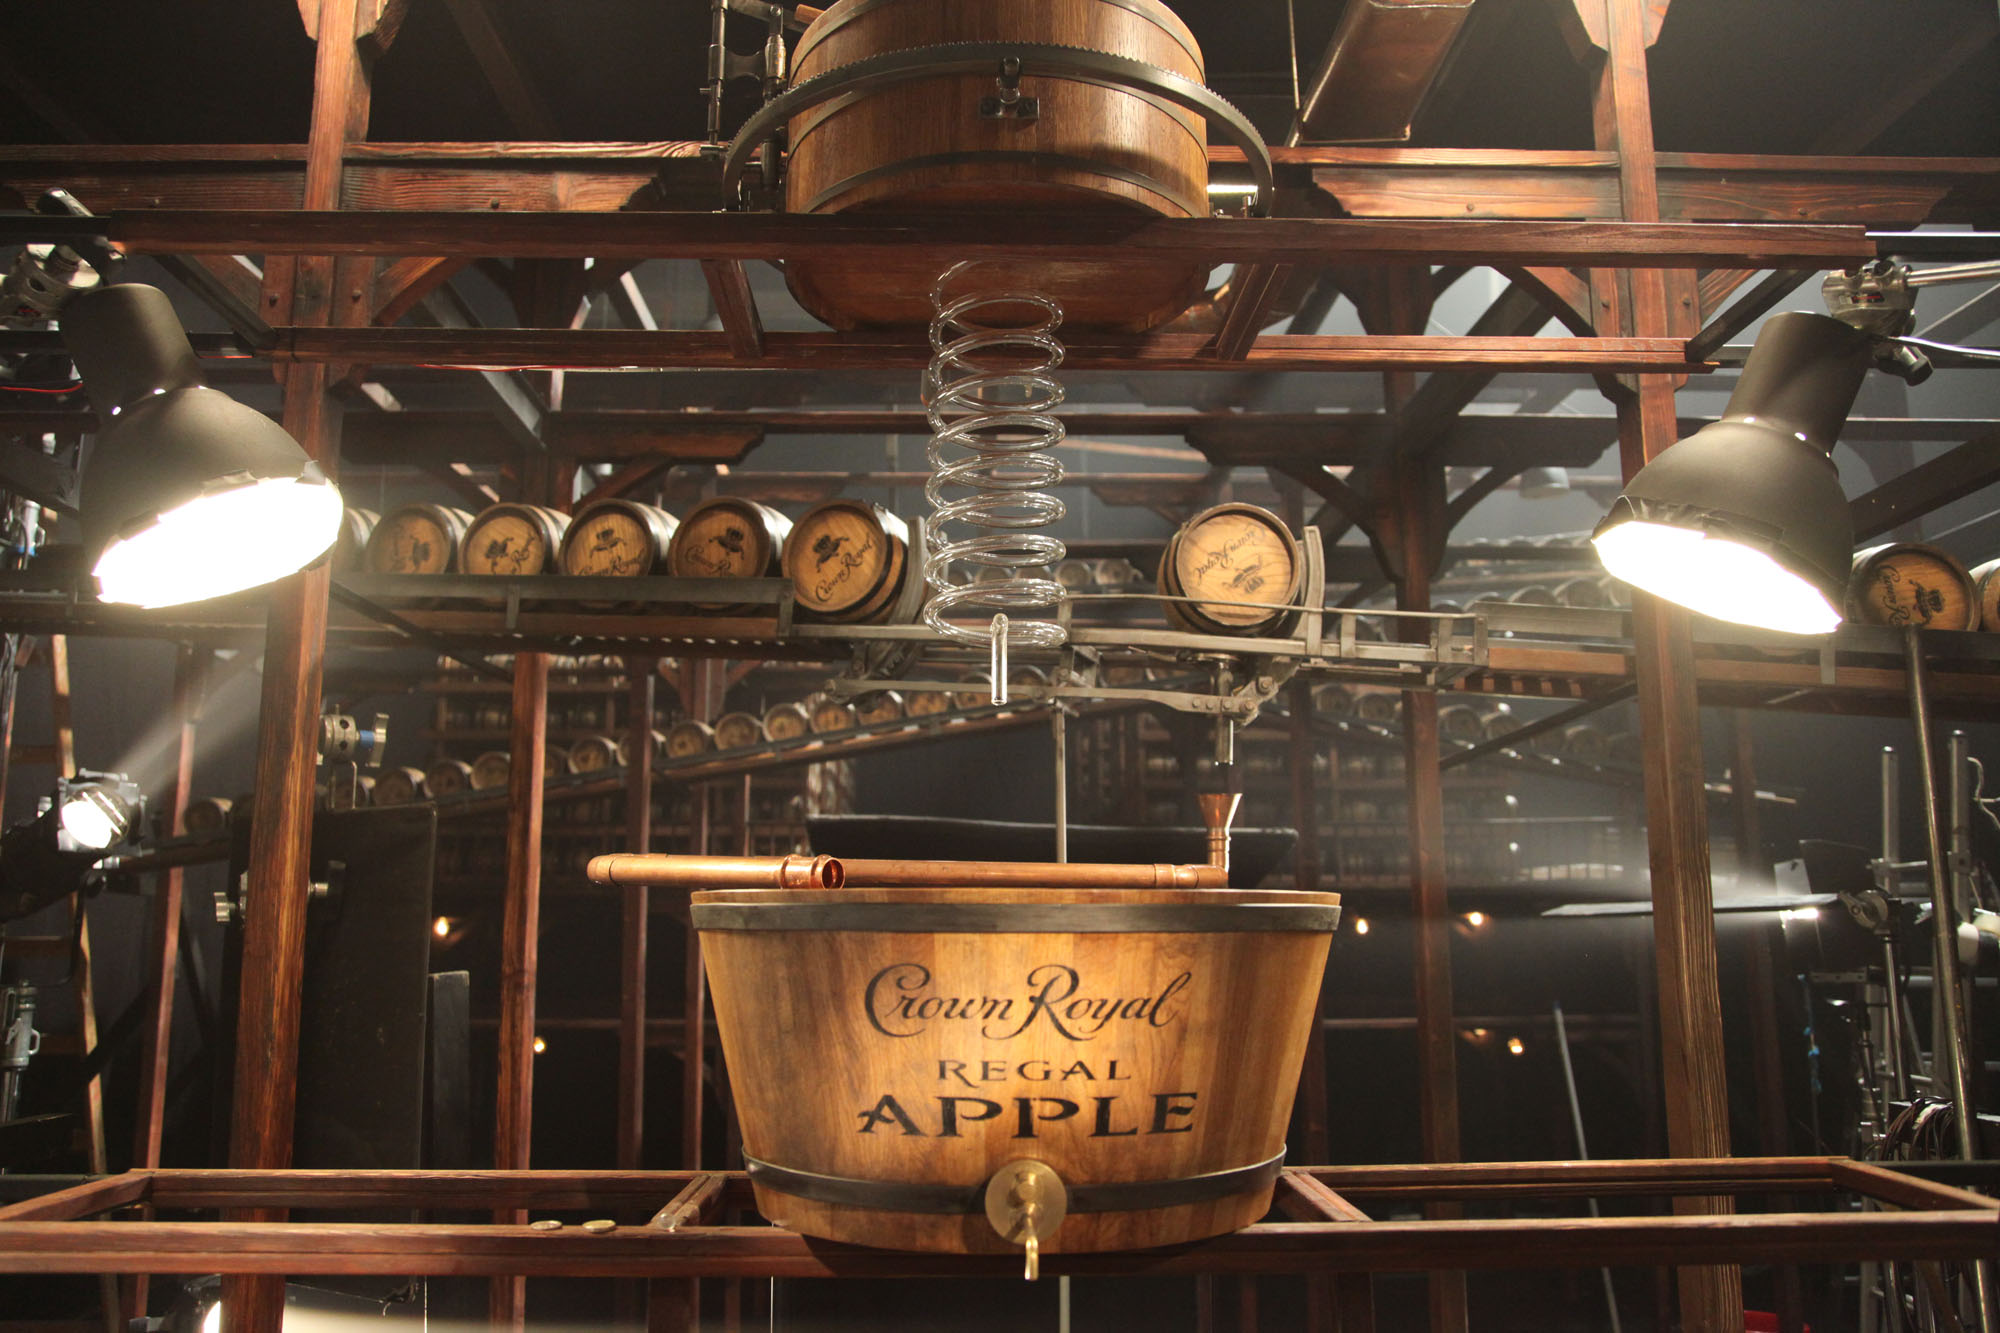 Crown Royal / Production Designer: Jiri Karasek